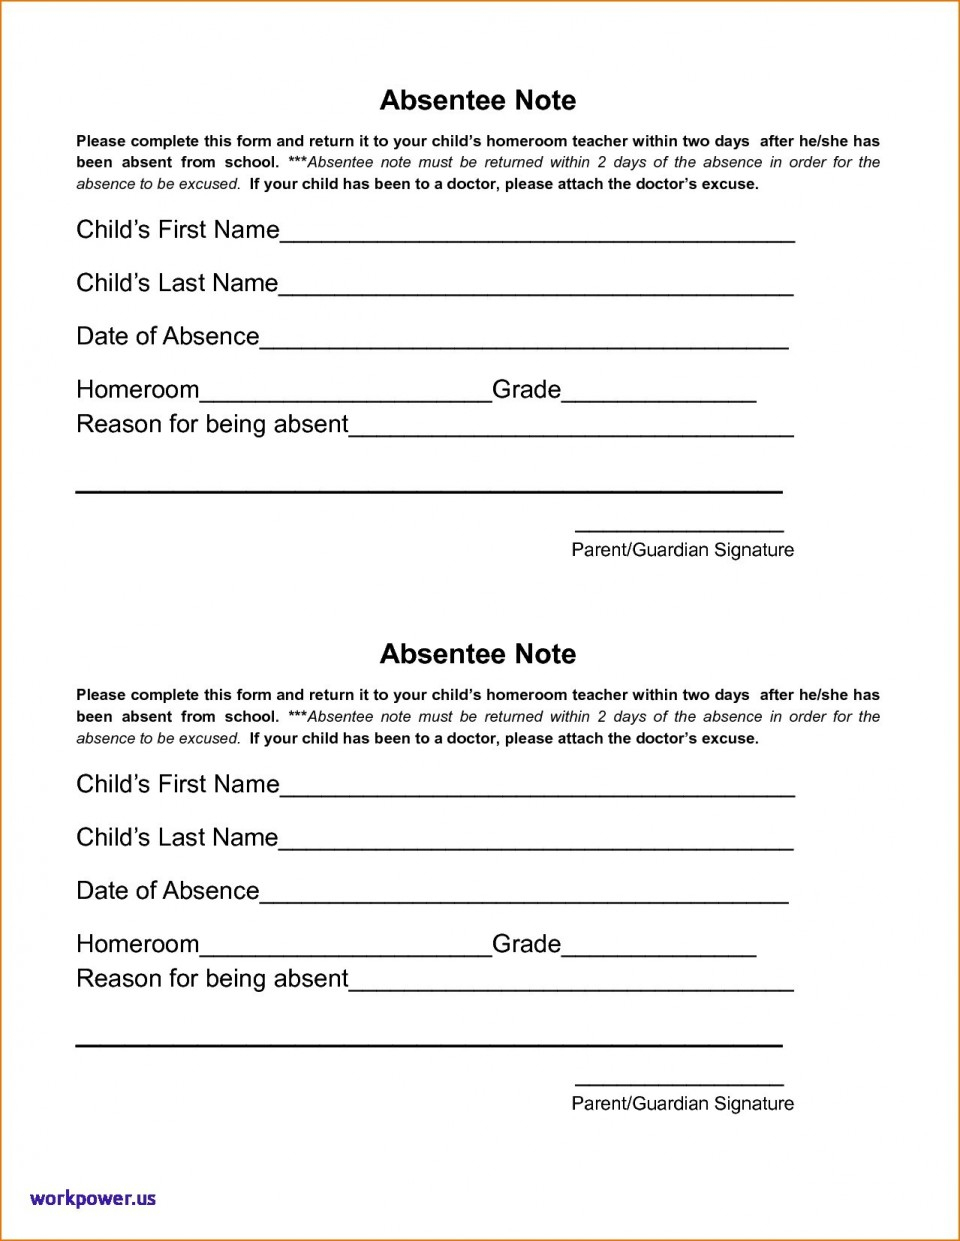 027 Fake Doctor Note Template Ideas Printable Doctors Best Notes - Free Printable Doctor Notes